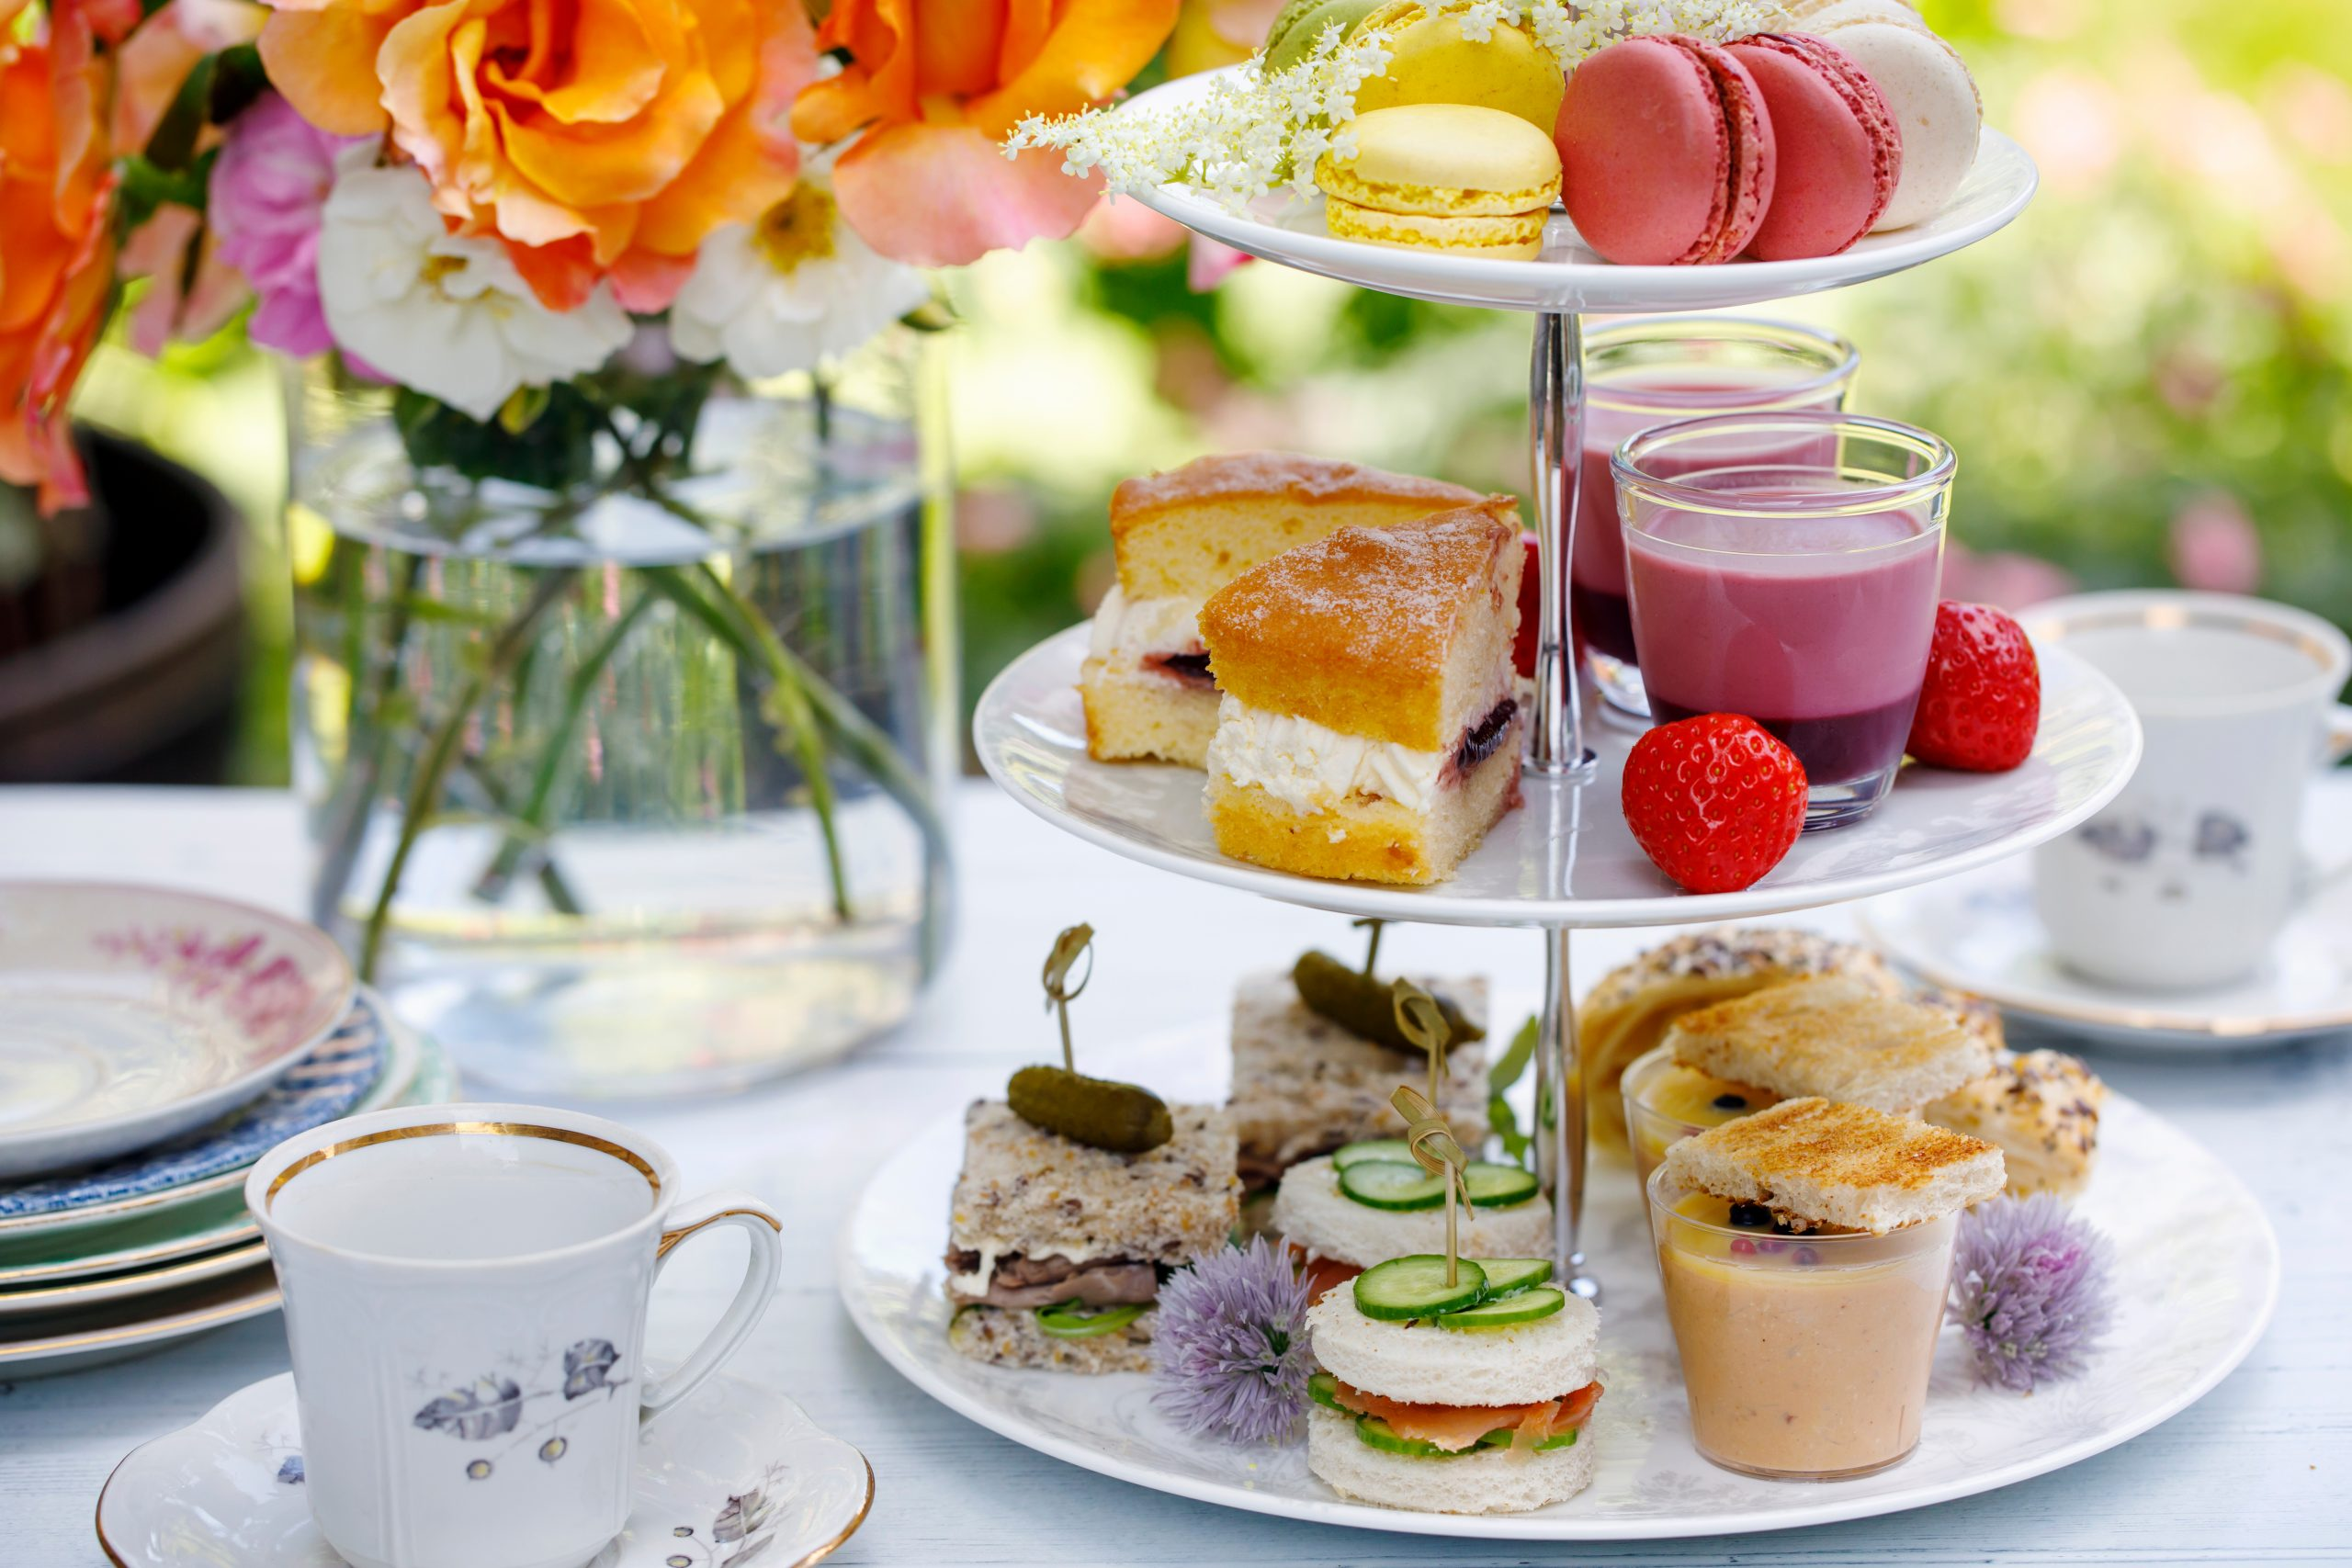 Join us for high tea in the gardens at The Beaumont.